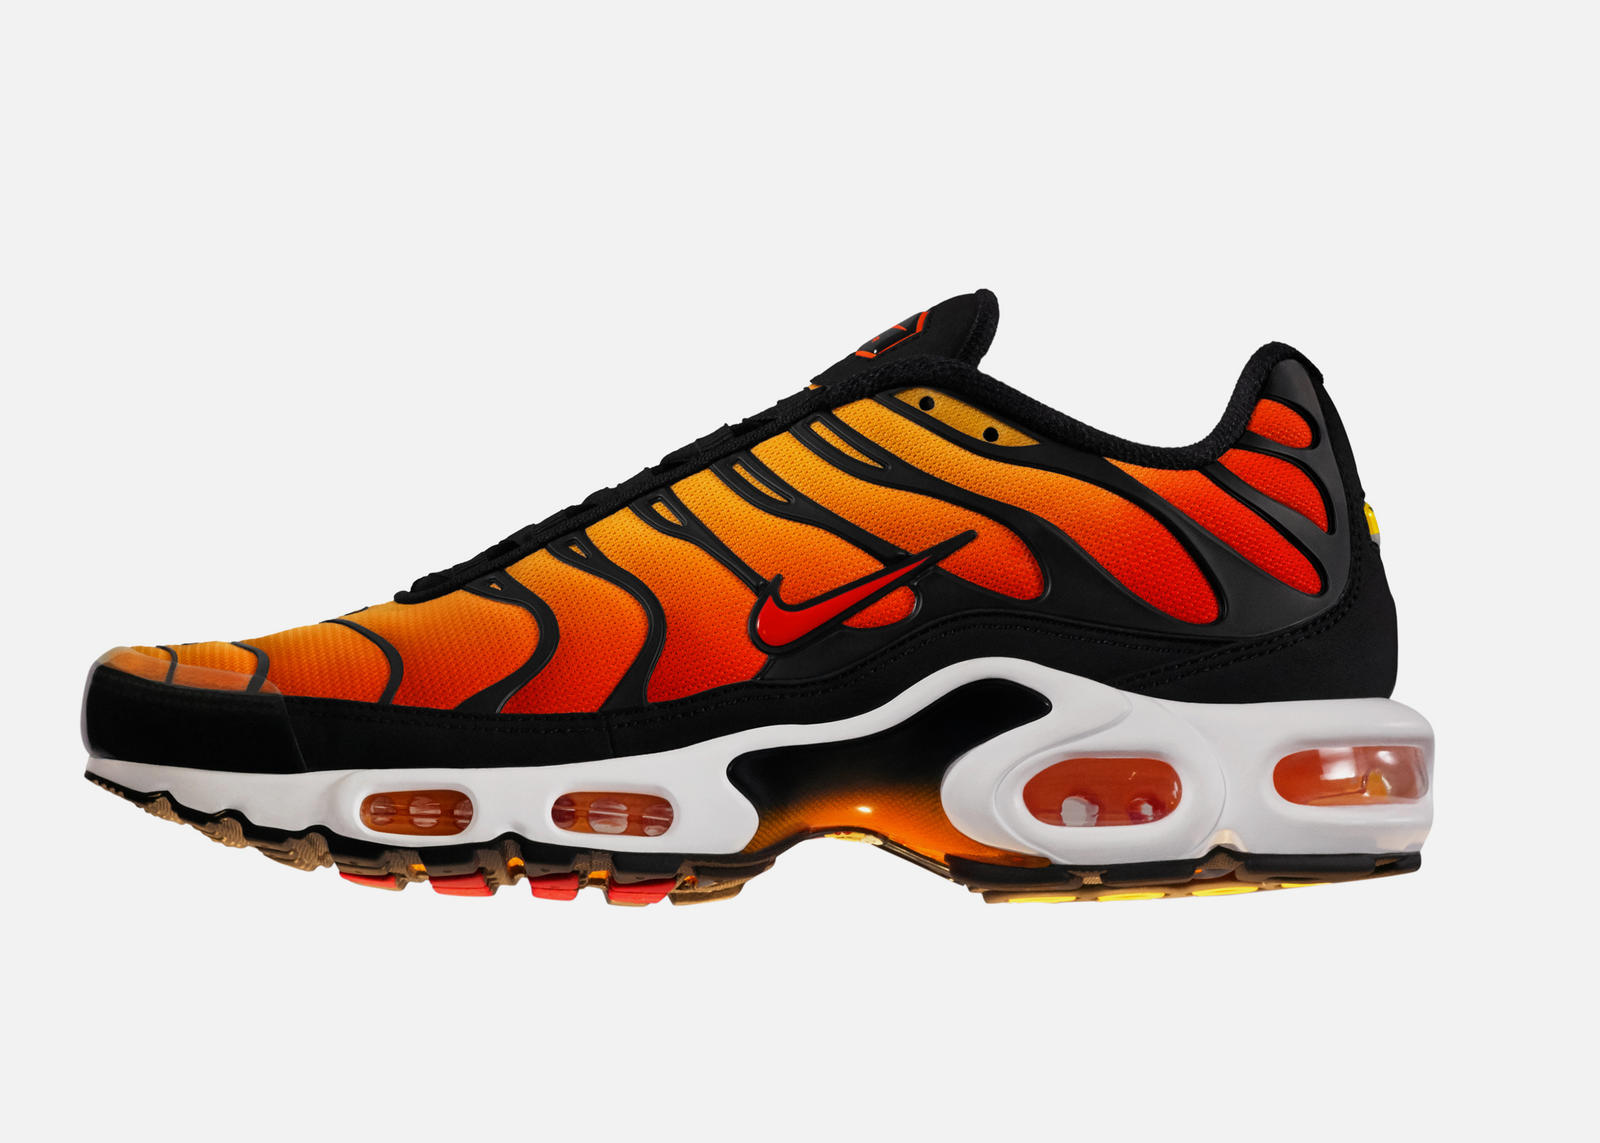 outlet store 7f6e0 becc1 The Untold Story of the Nike Air Max Plus 19